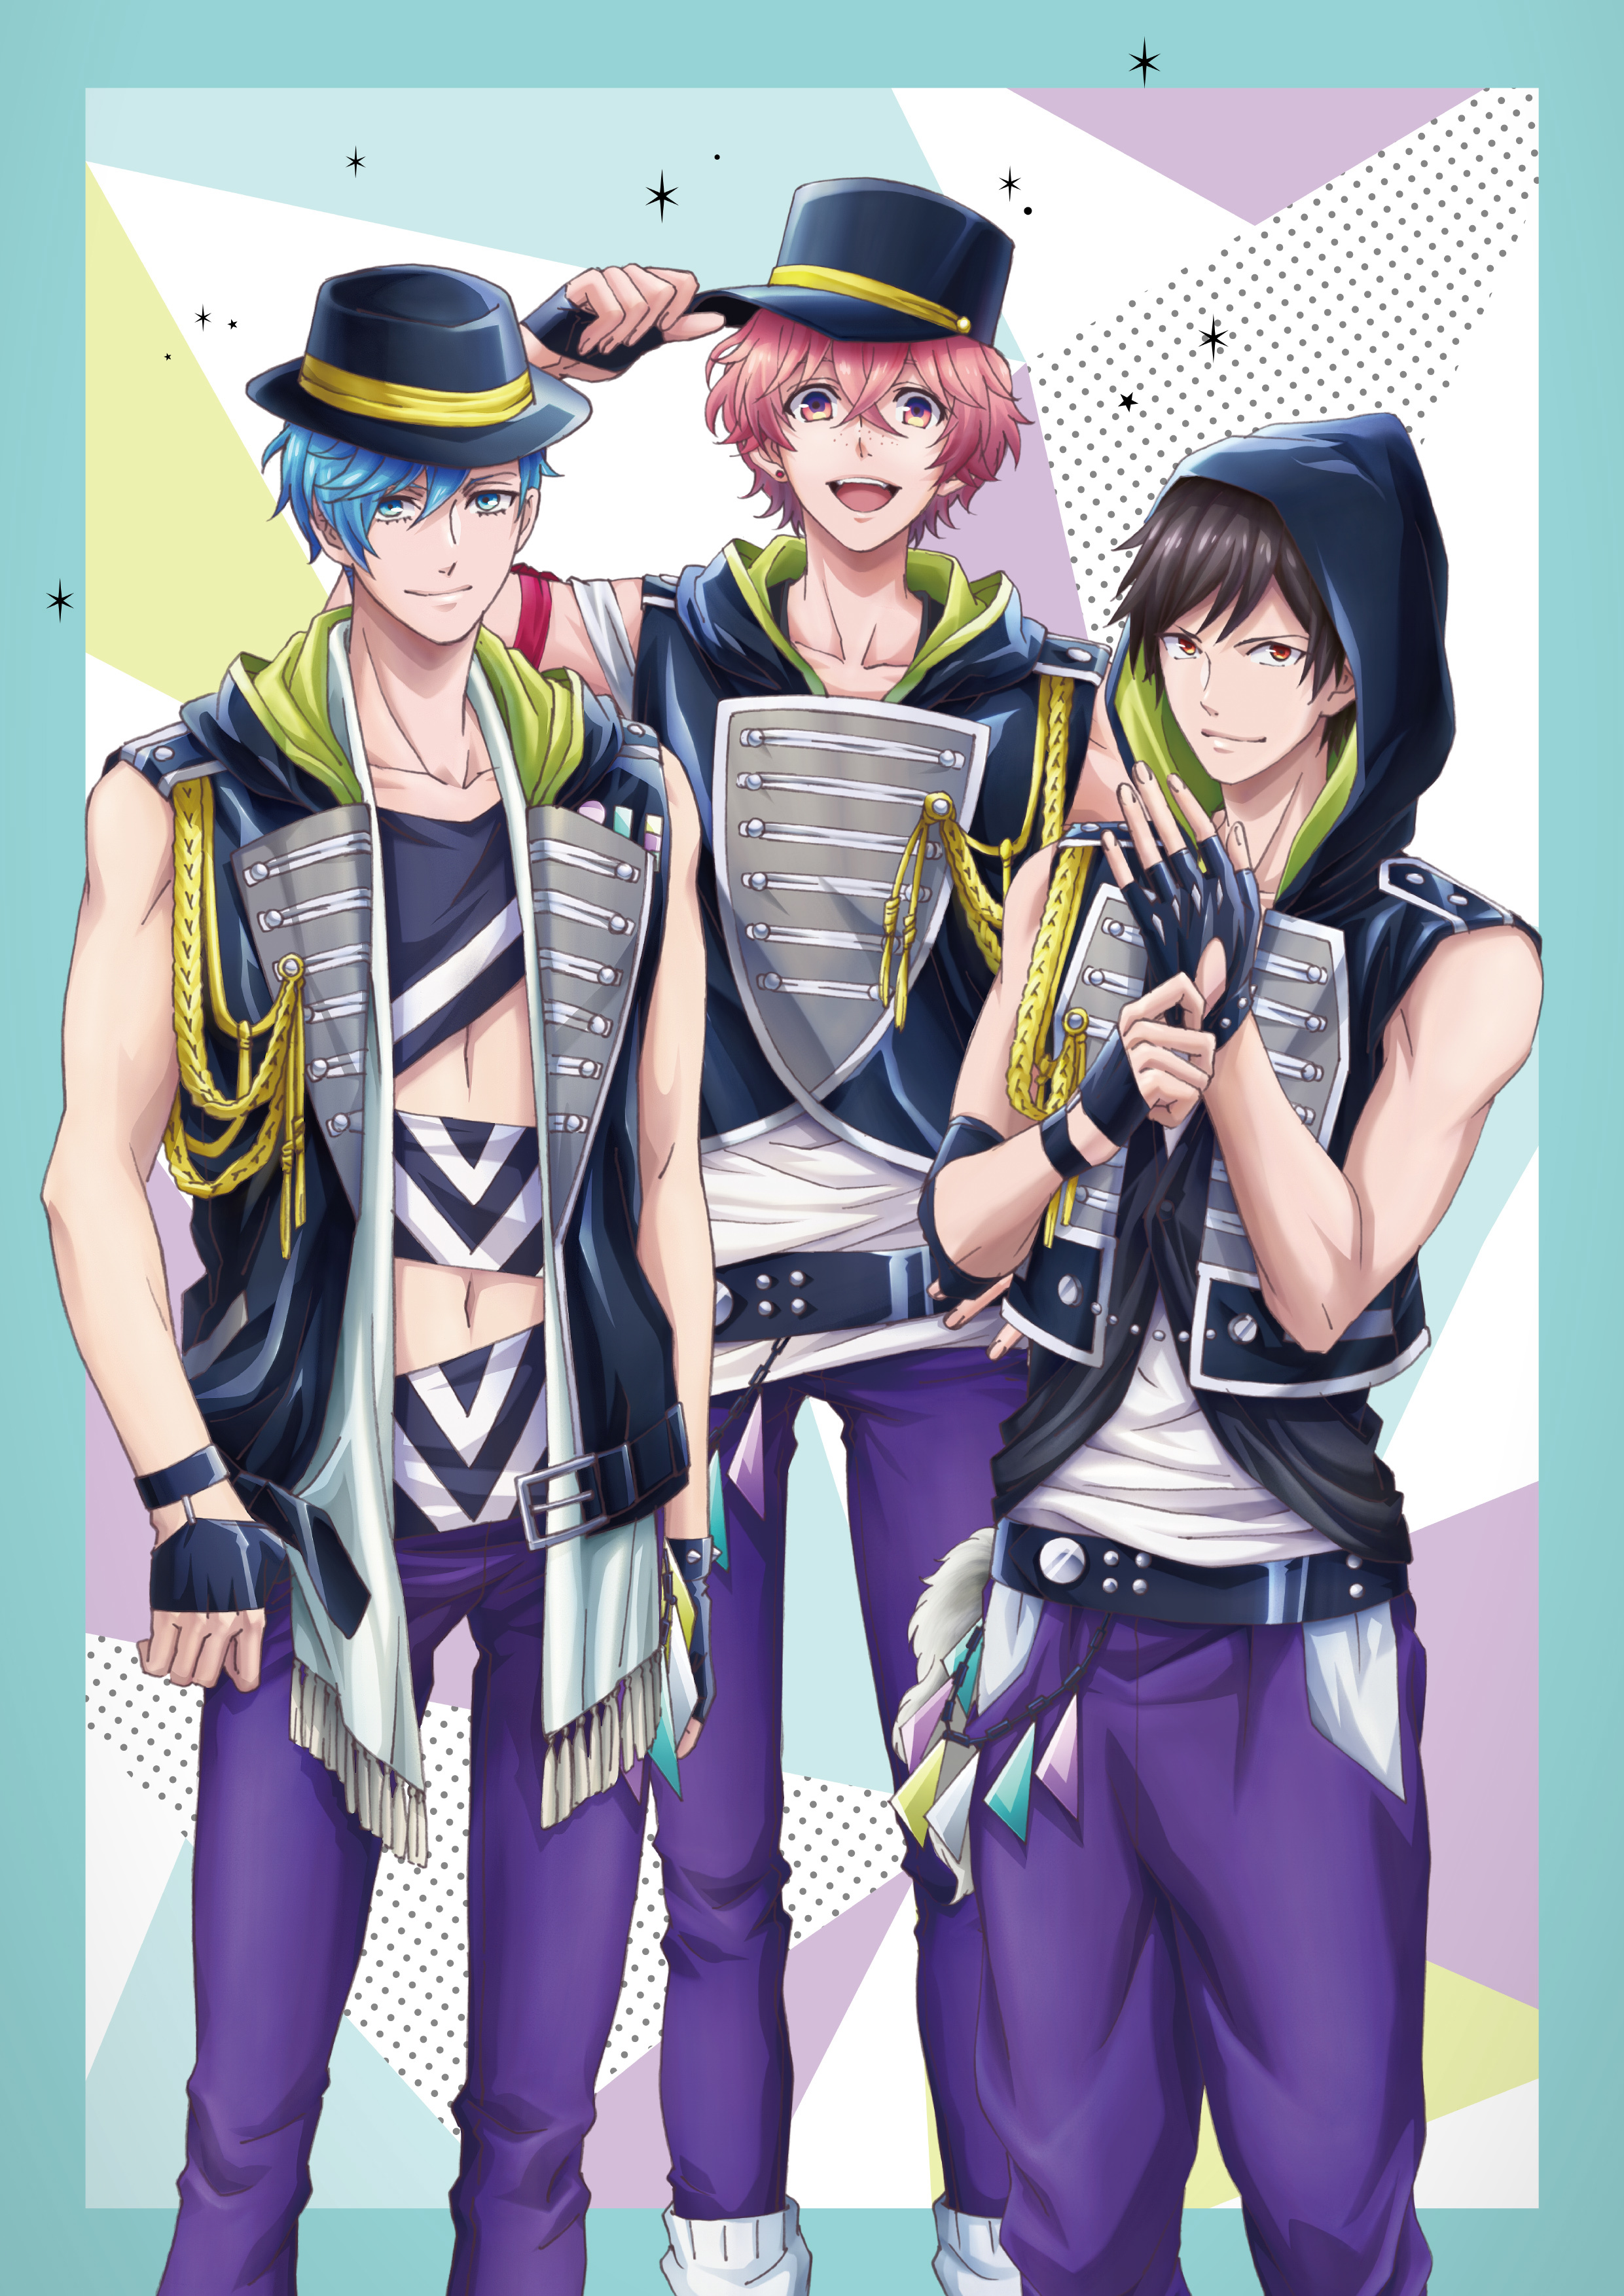 「THRIVE」 (C)MAGES./Team B-PRO (C)MAGES./Team B-PRO2 (C)B-PROJECT